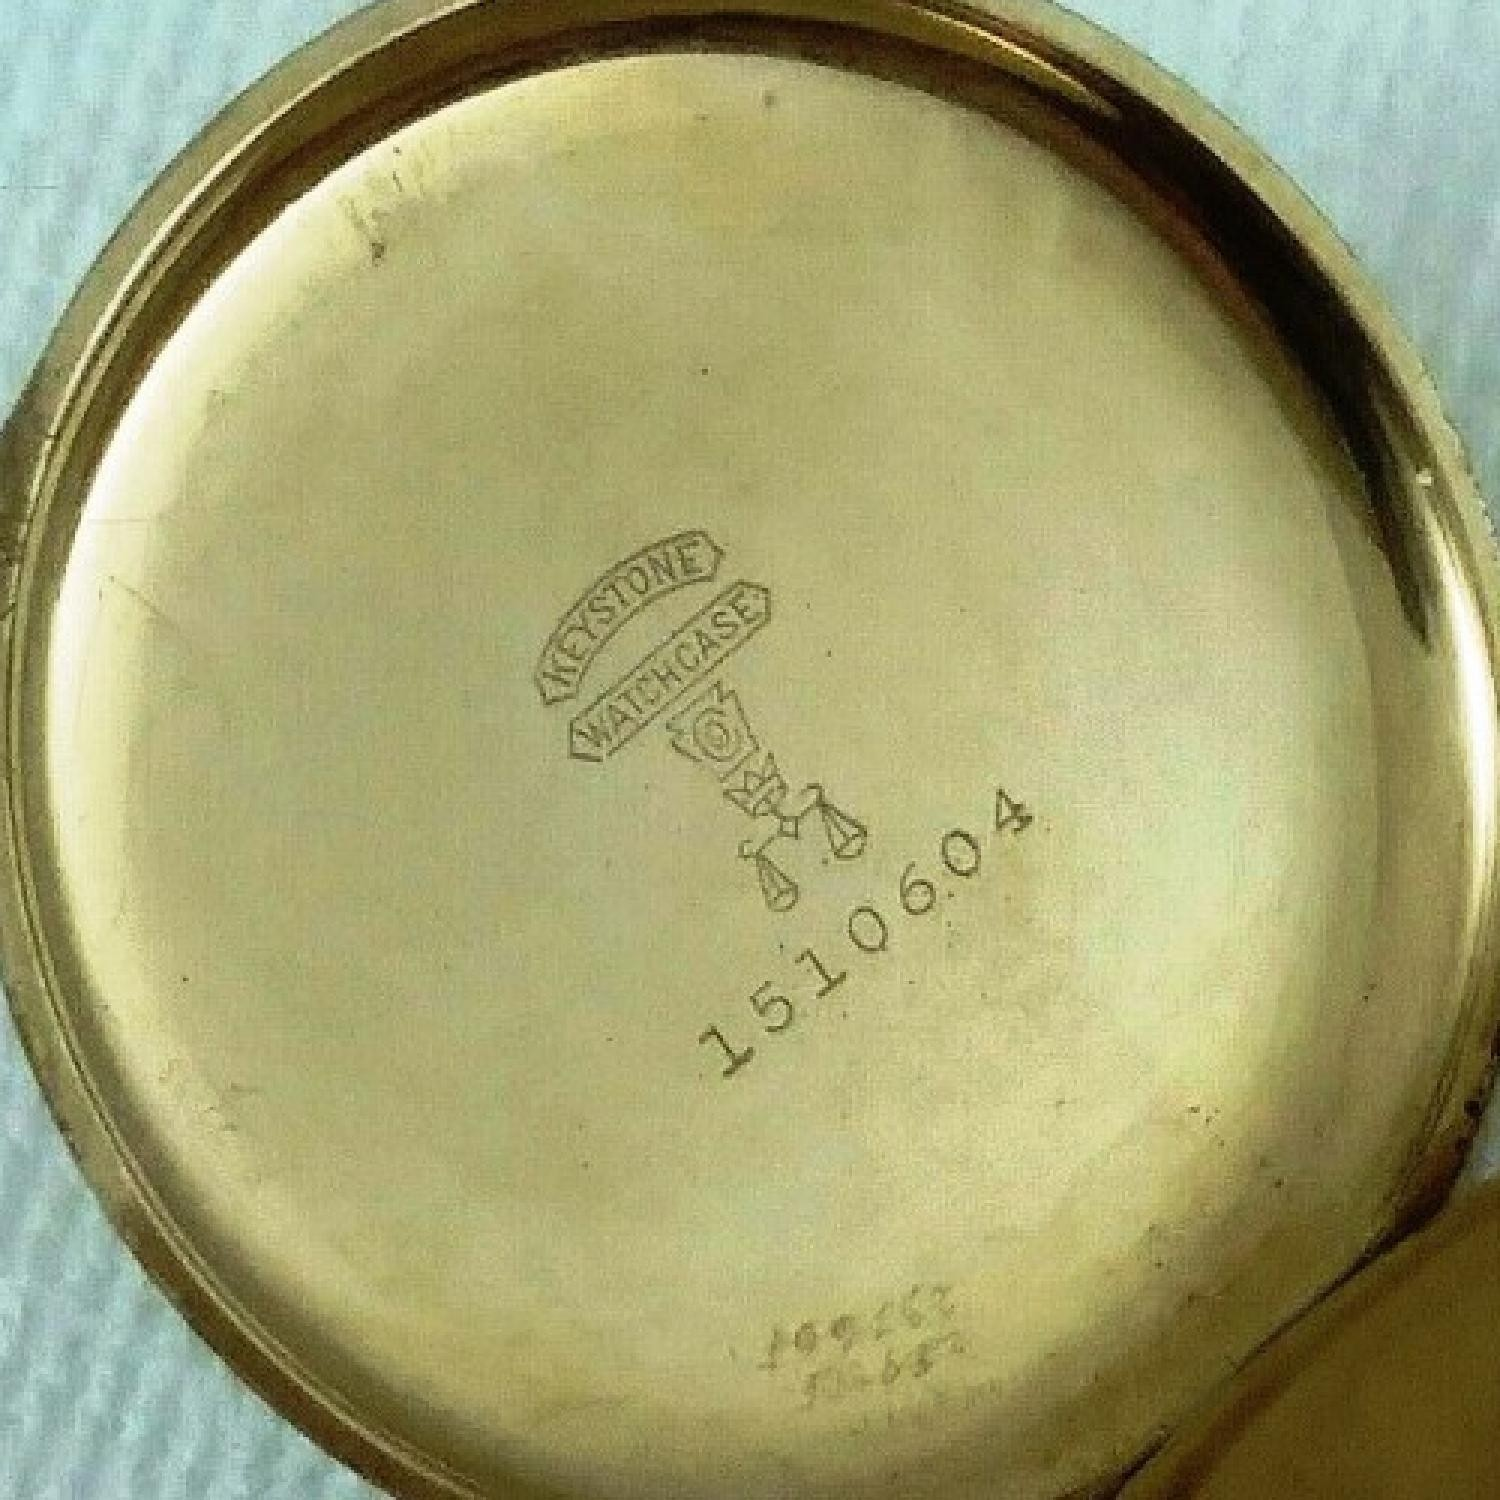 Image of E. Howard Watch Co. (Keystone) Series 7 #1256402 Case